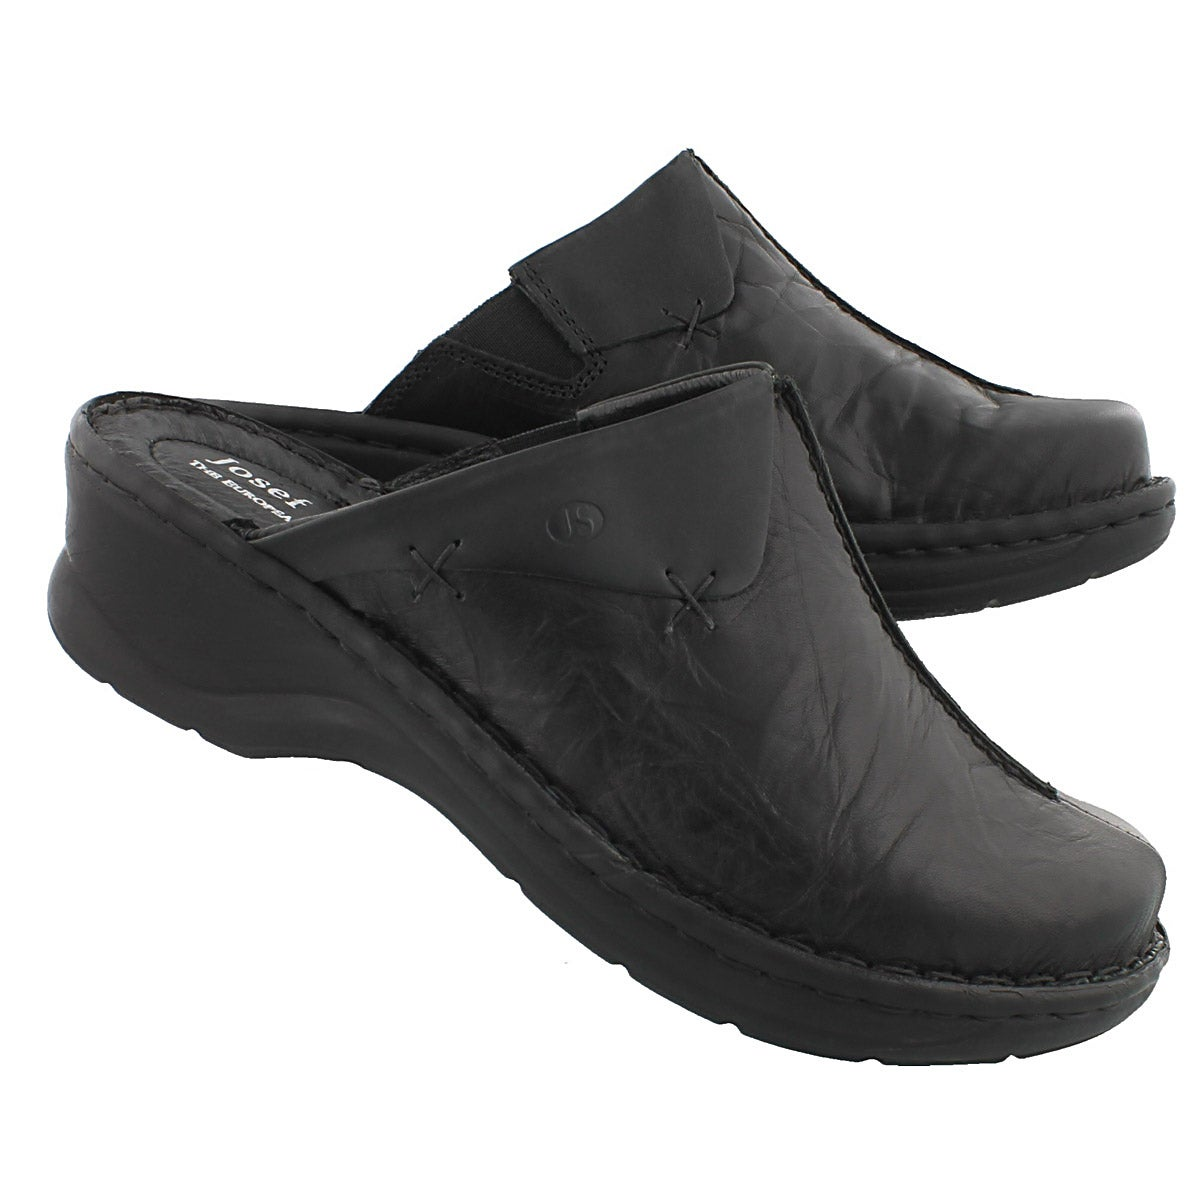 Lds Catalonia 48 black low wedge clog